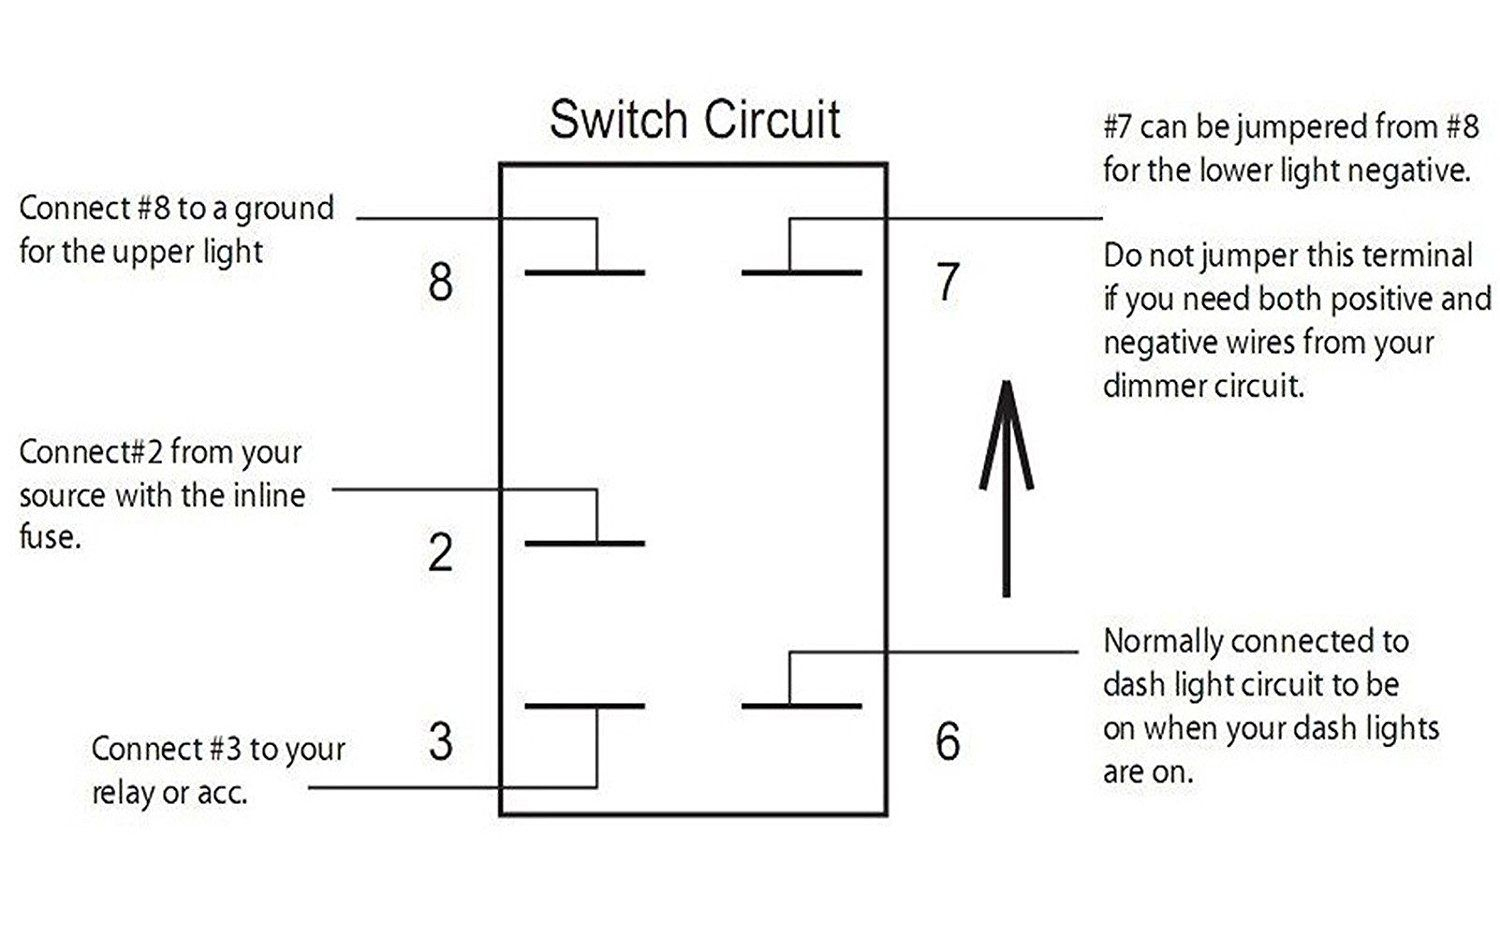 Carling Switches Wiring Diagram | Hastalavista - Carling Switches Wiring Diagram